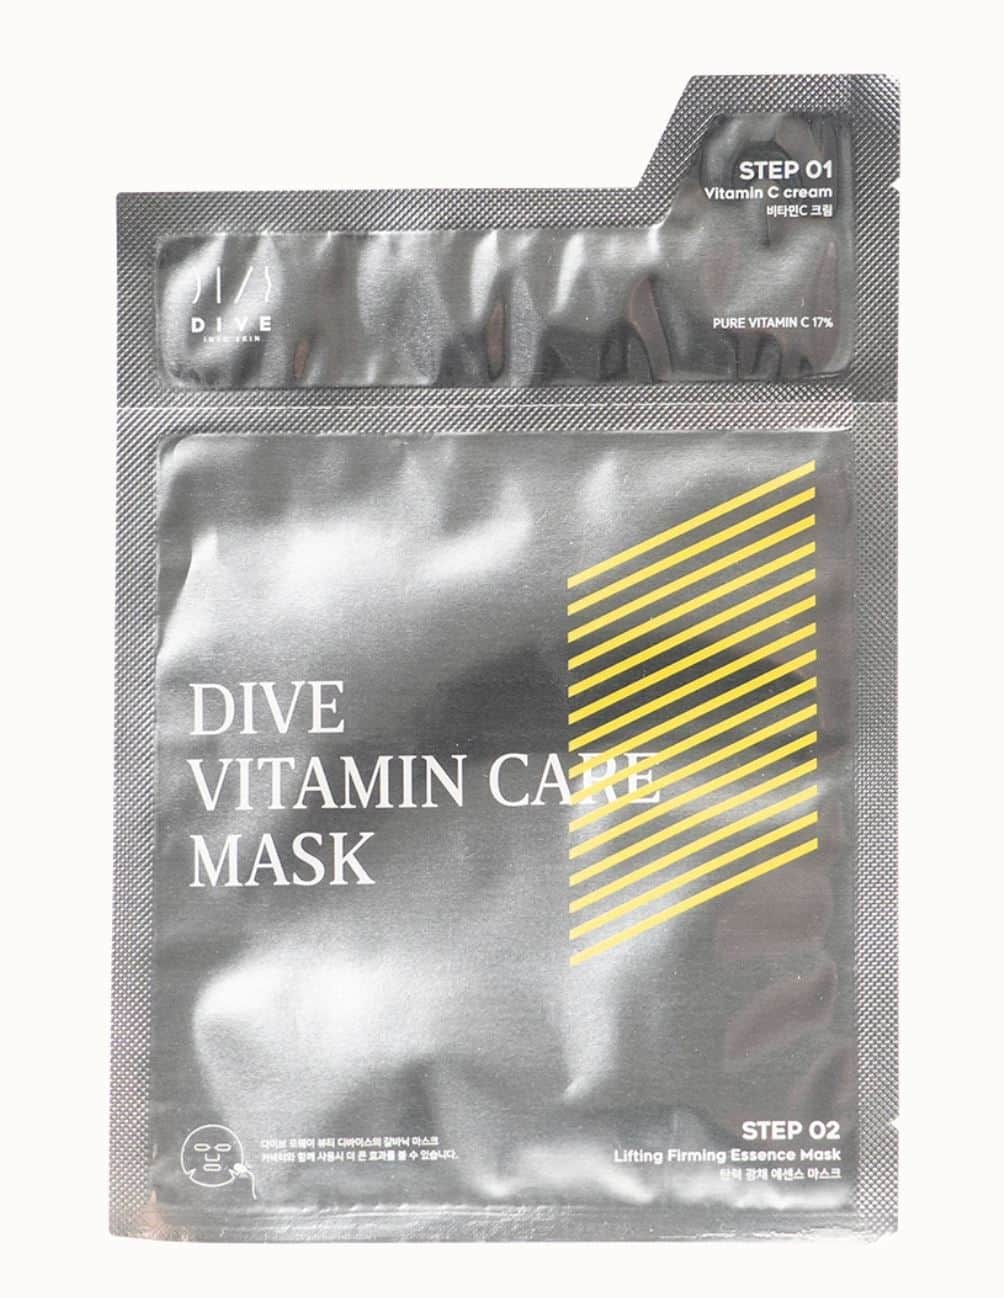 DIVE Vitamin Care Mask Default Title